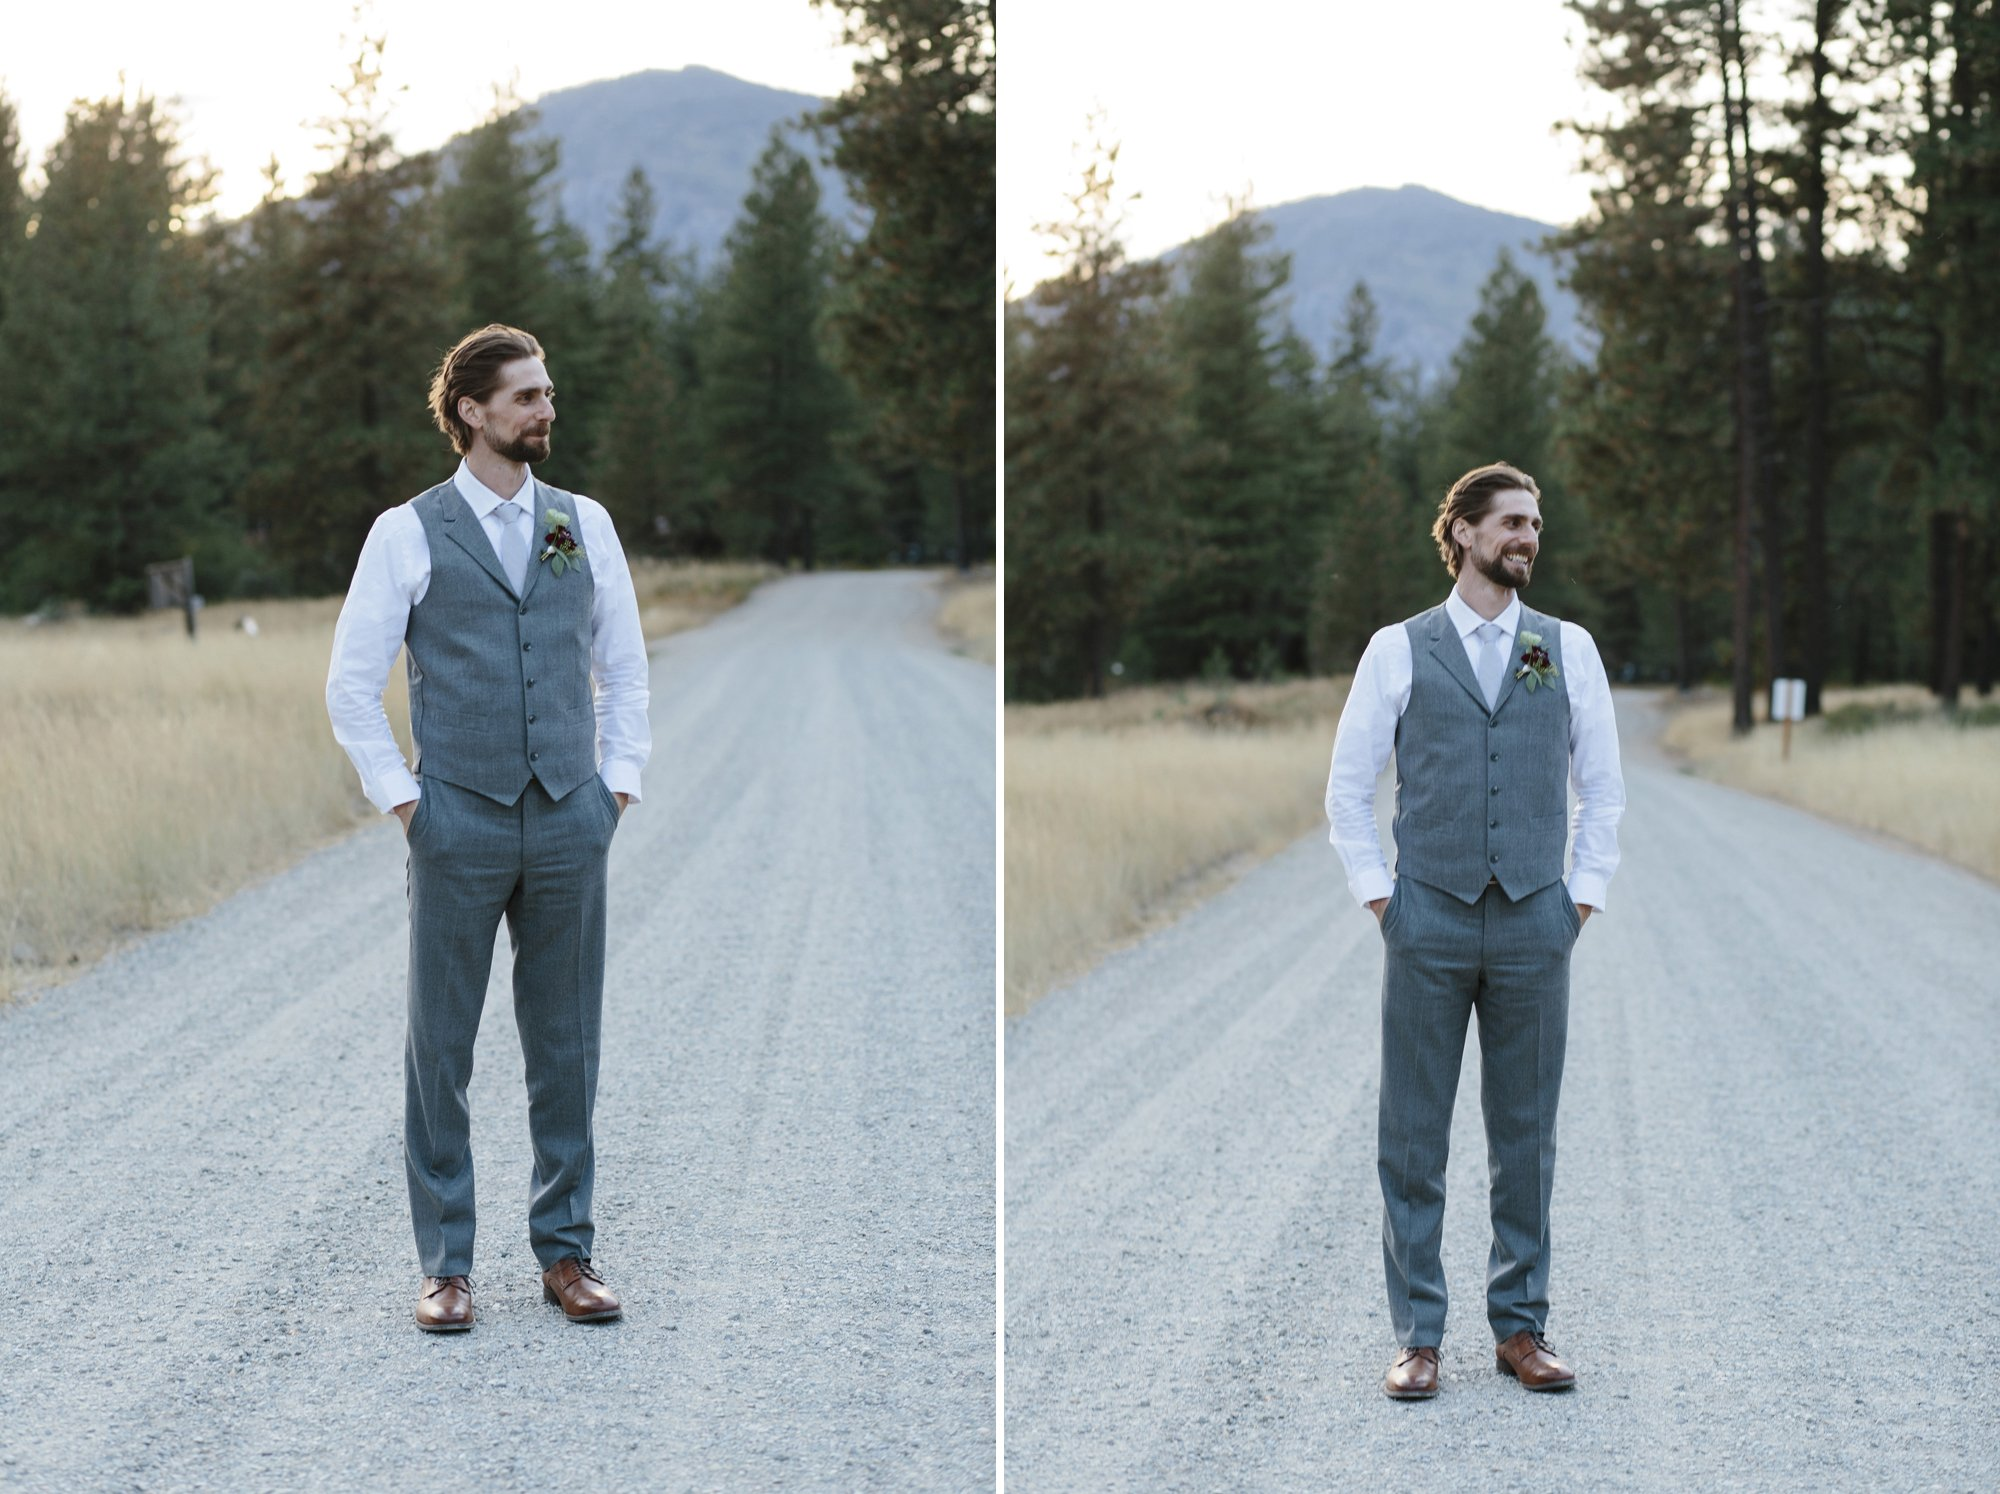 Wedding portraits in a field in the Methow Valley